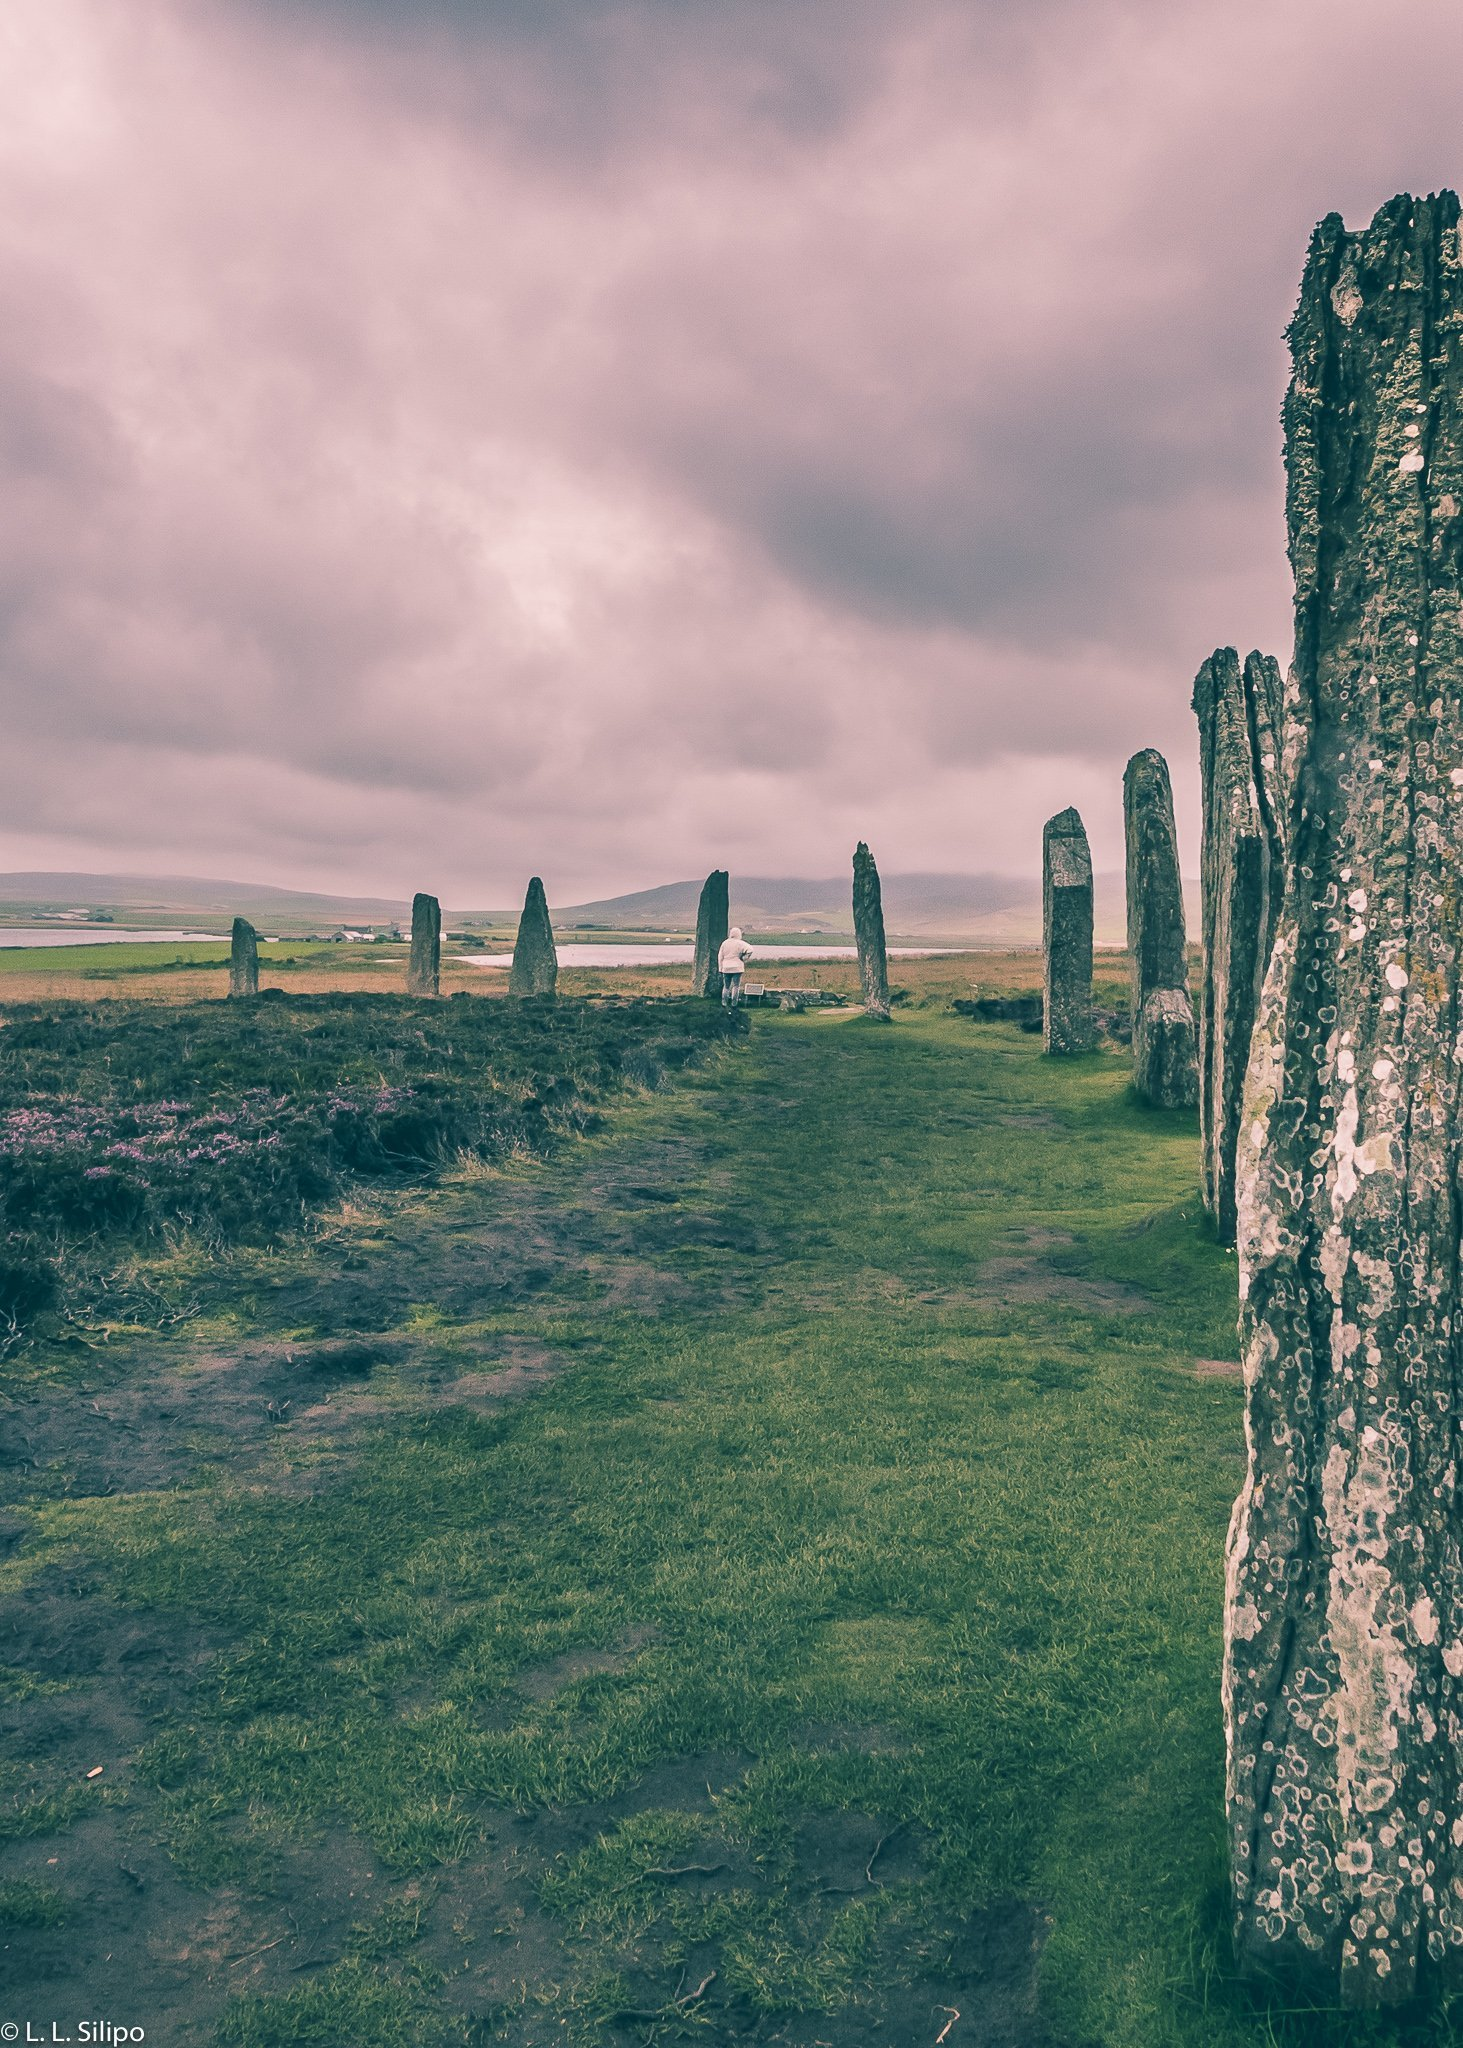 Brae, Skara, age, architecture, building, countryside, historic, history, landscape, monument, nature, old, orkney, outdoors, rural, scotland, scottish, sky, stone, travel, village